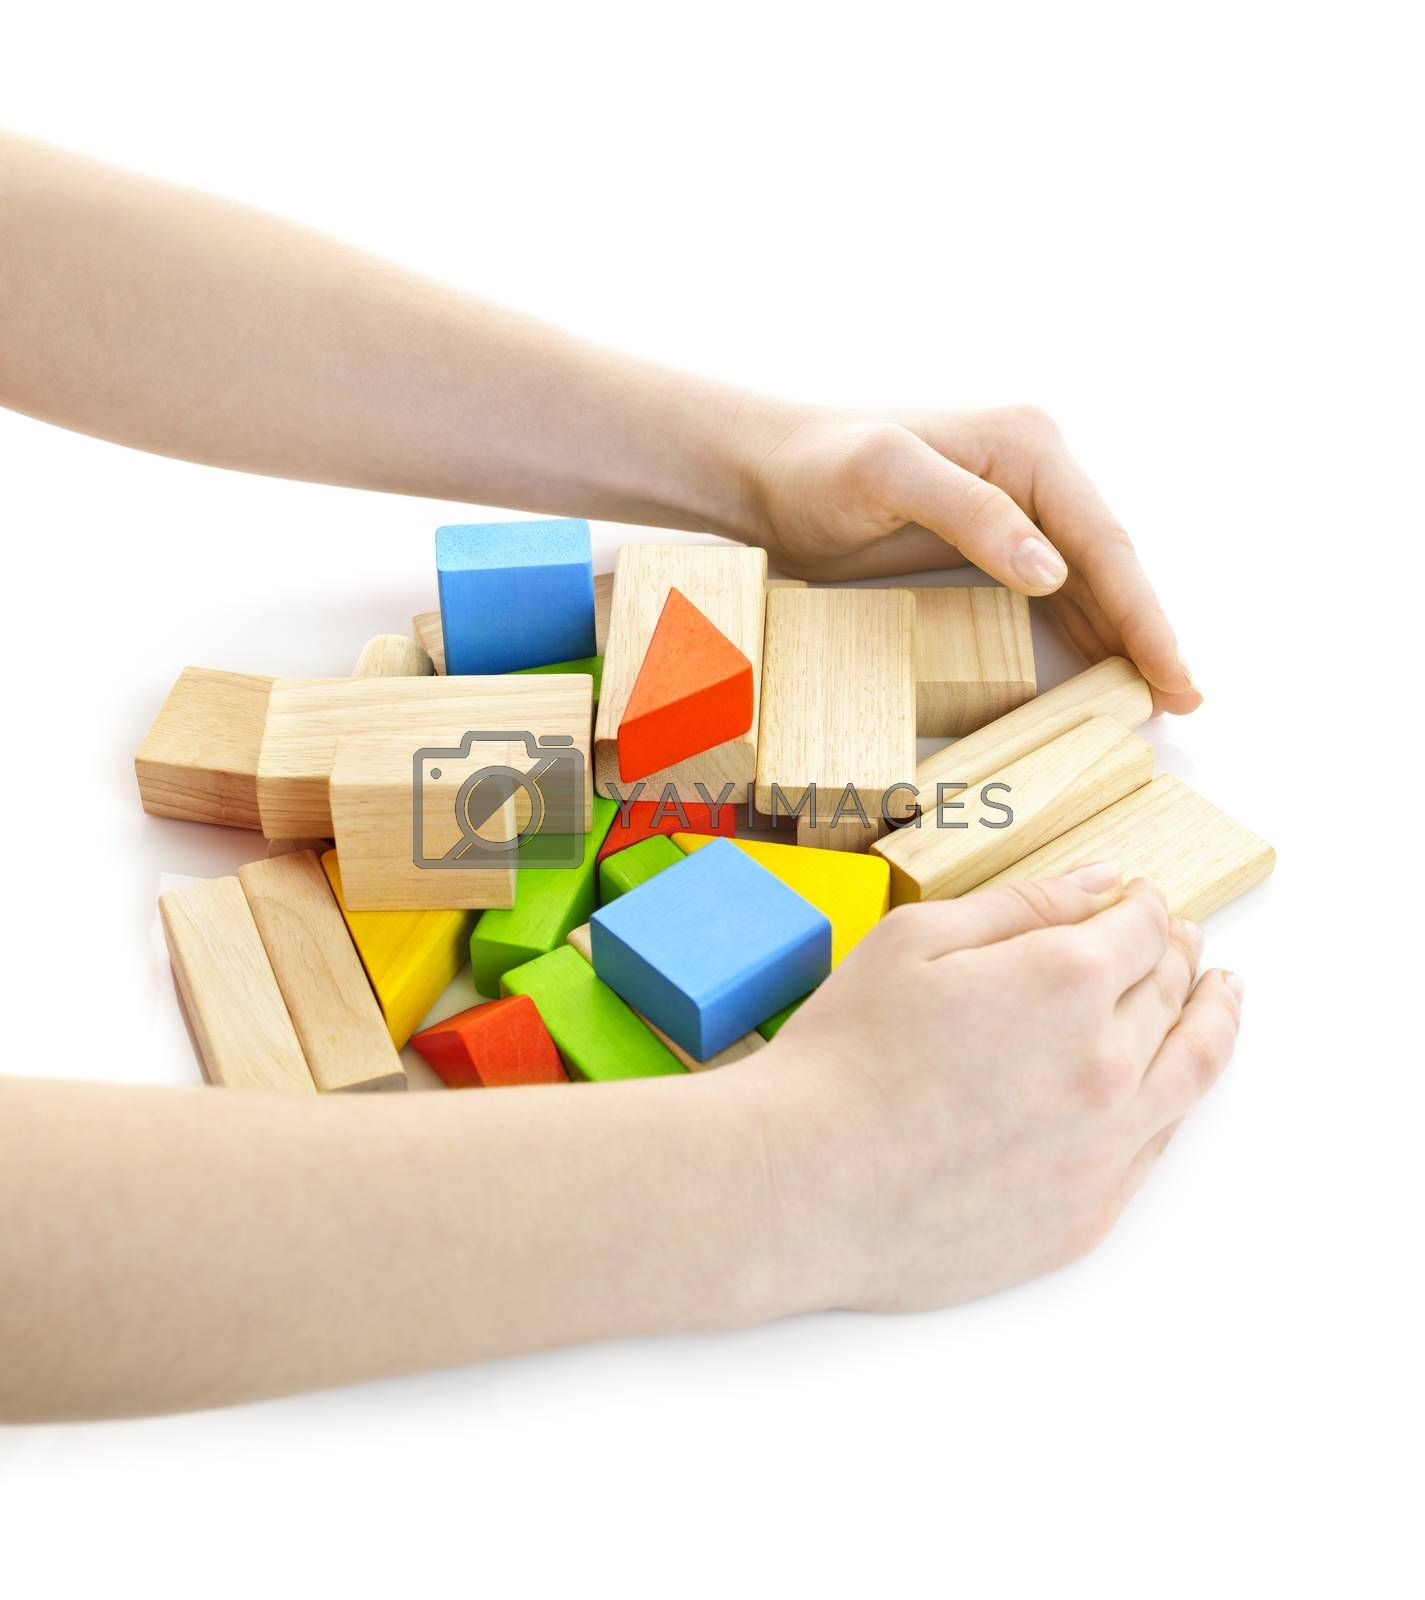 Hands gathering pile of wooden block toys isolated on white